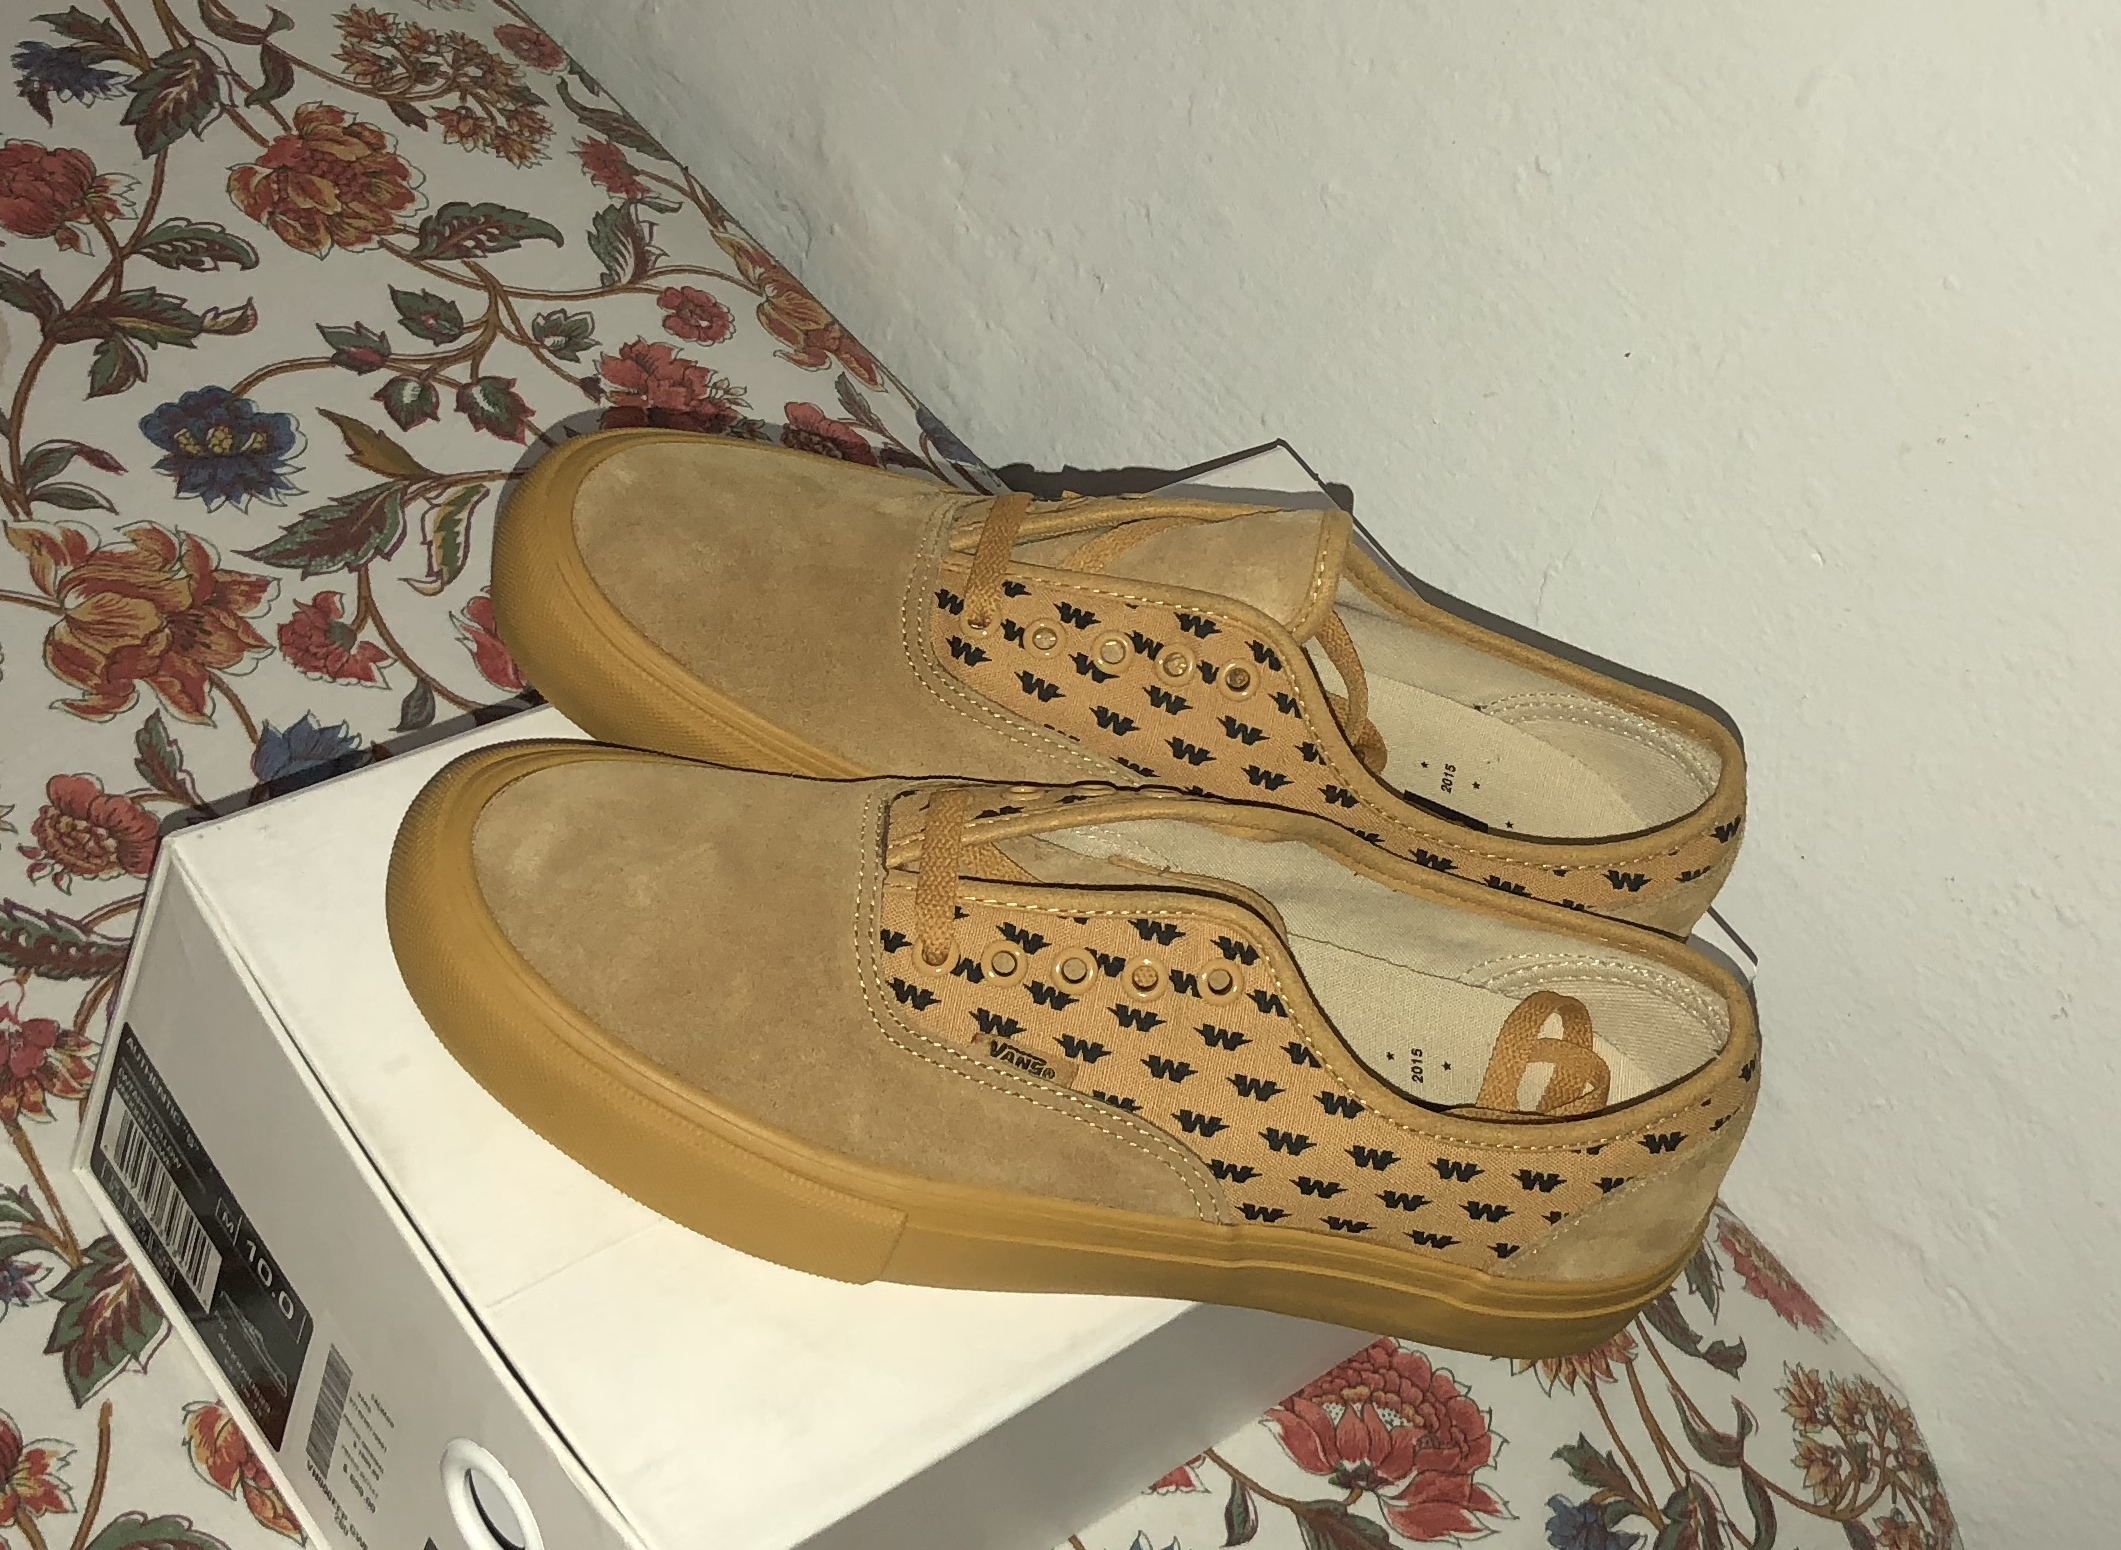 1ac6ff7aae1f Vans Vans Syndicate x WTAPS Authentic S Yellow Black Size 10 - Low-Top  Sneakers for Sale - Grailed